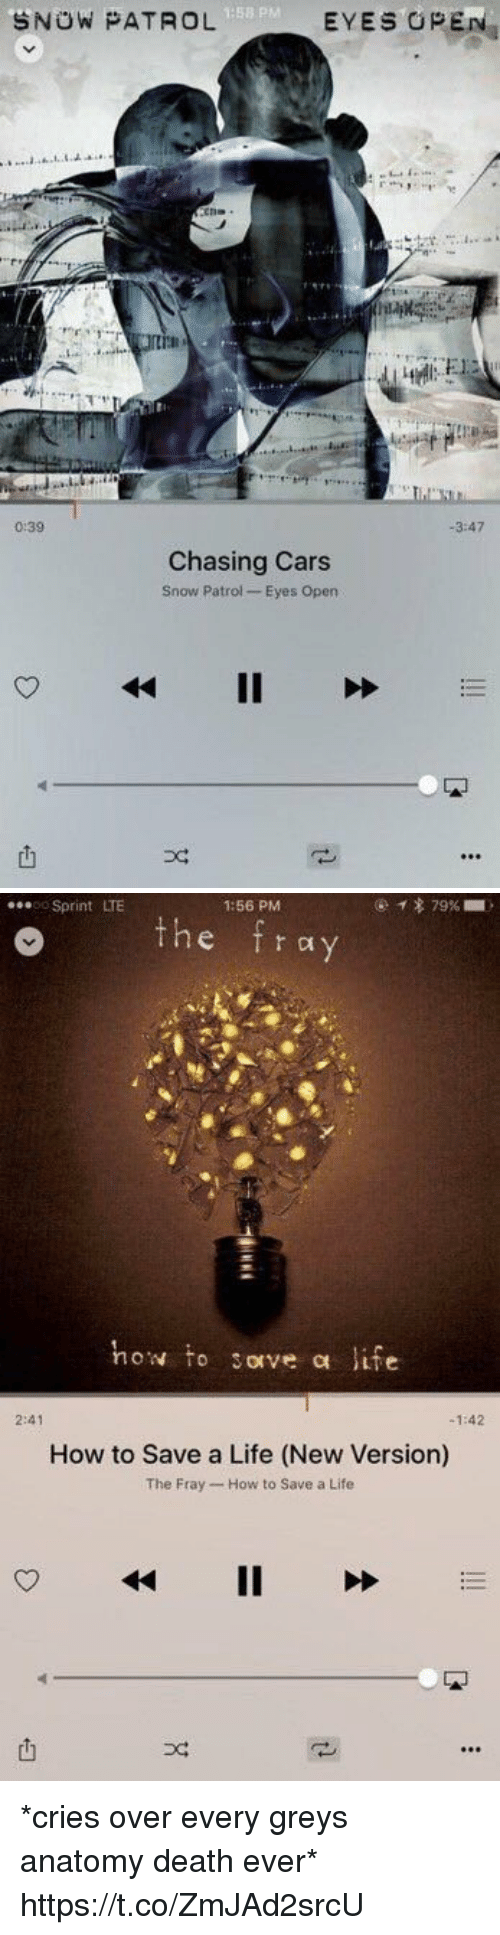 fray: 1:58  SNOW PATROL  EYES OPEN  0:39  -3:47  Chasing Cars  Snow Patrol Eyes Open   Sprint LTE  1:56 PM  o the fray  how to sove a life  2:41  -1:42  How to Save a Life (New Version)  The Fray- How to Save a Life  4411 >>  也 *cries over every greys anatomy death ever* https://t.co/ZmJAd2srcU